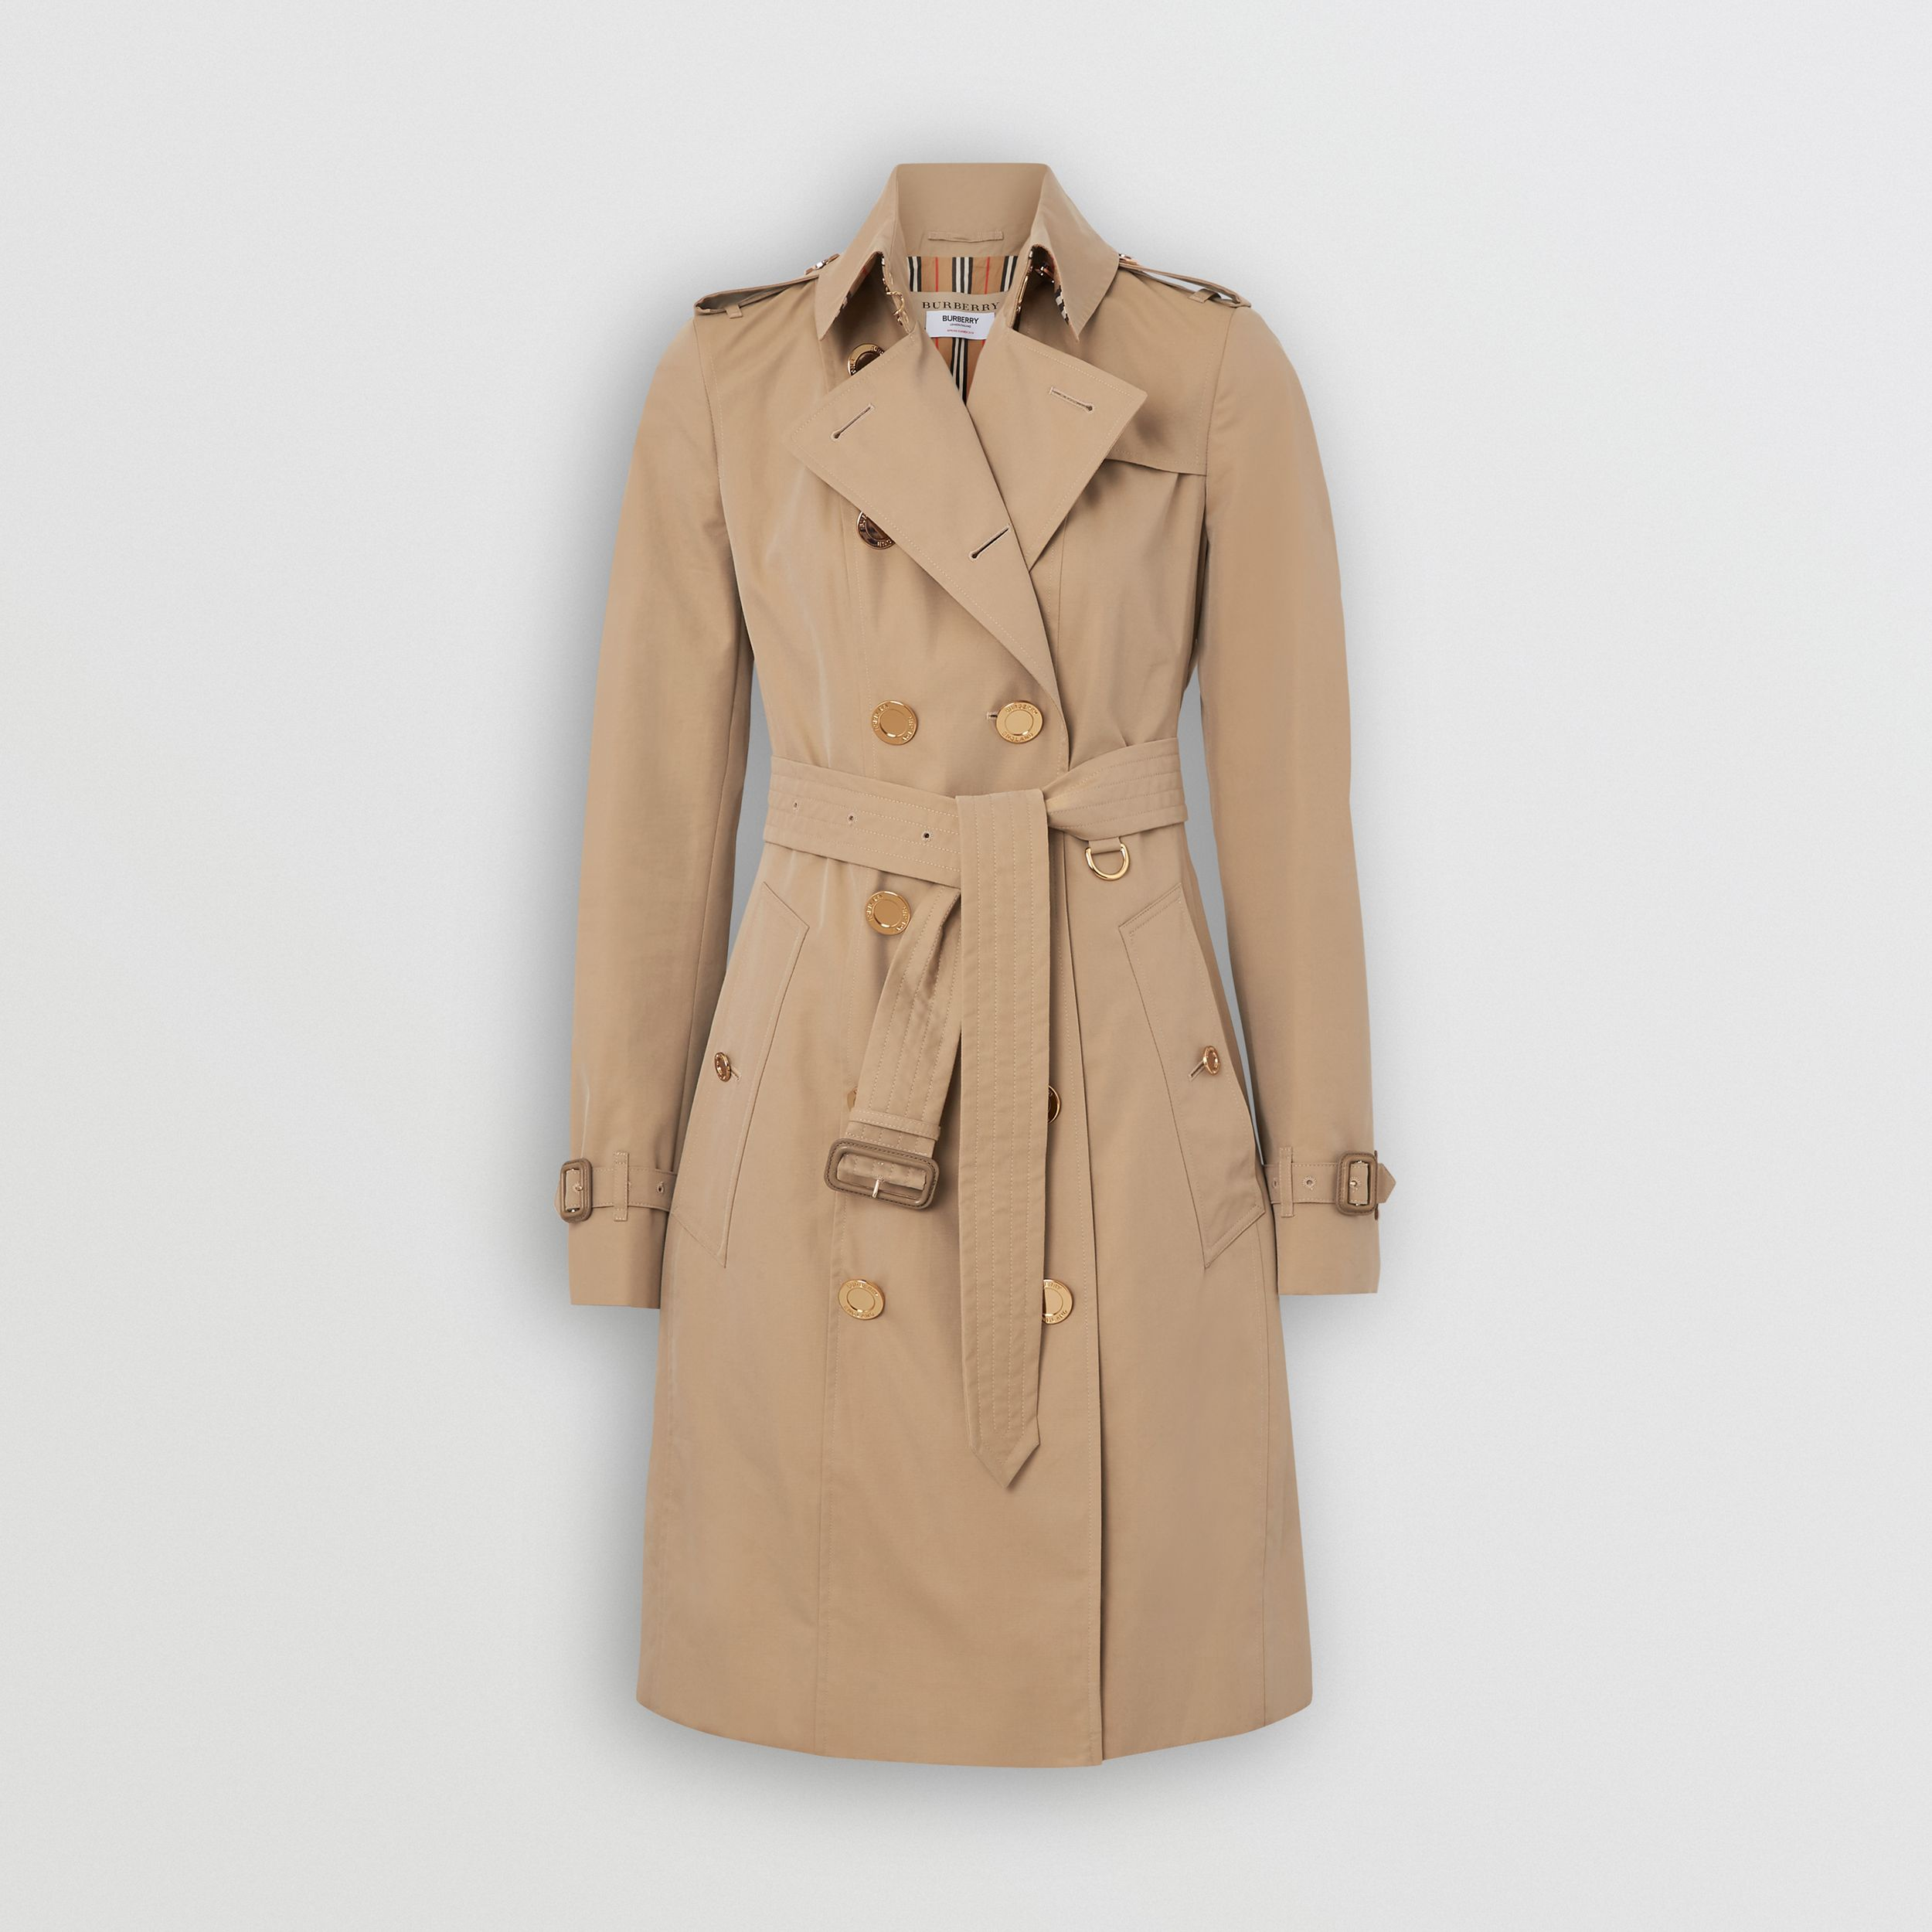 Gold Button Cotton Gabardine Trench Coat in Honey - Women | Burberry - 4